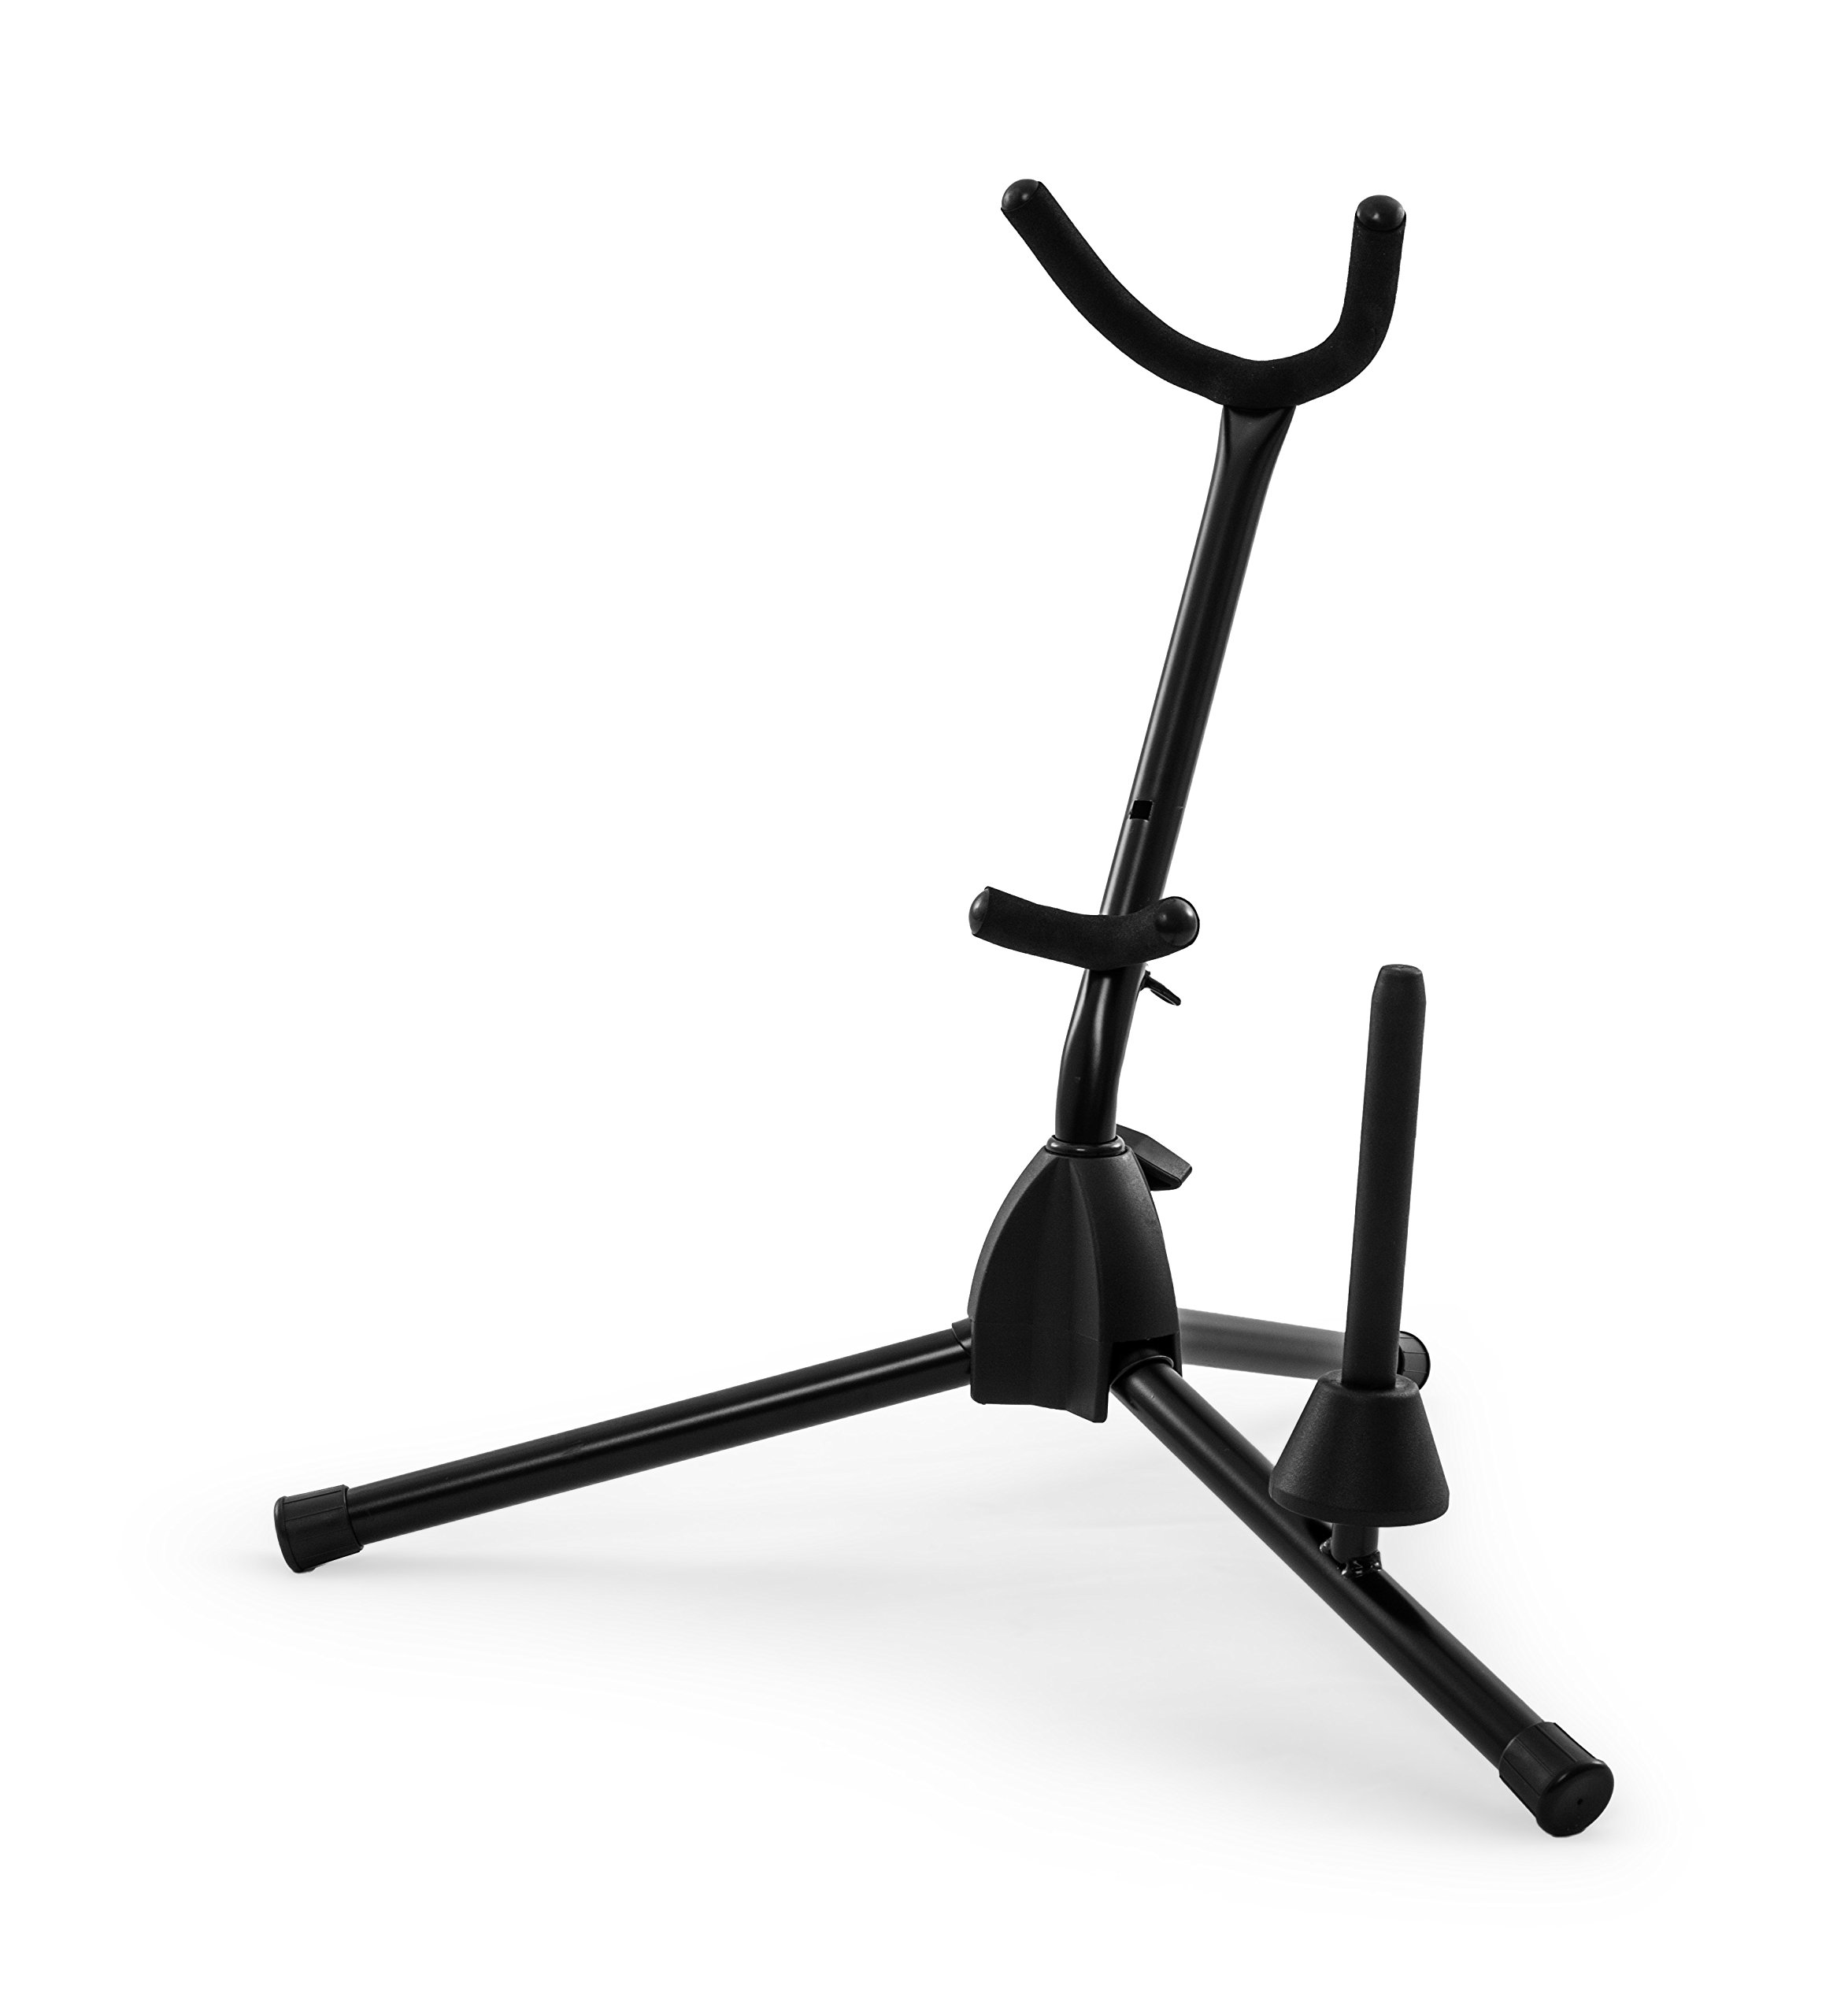 Nomad NIS-C030 Saxophone Stand with Single Peg, Multi-Stand